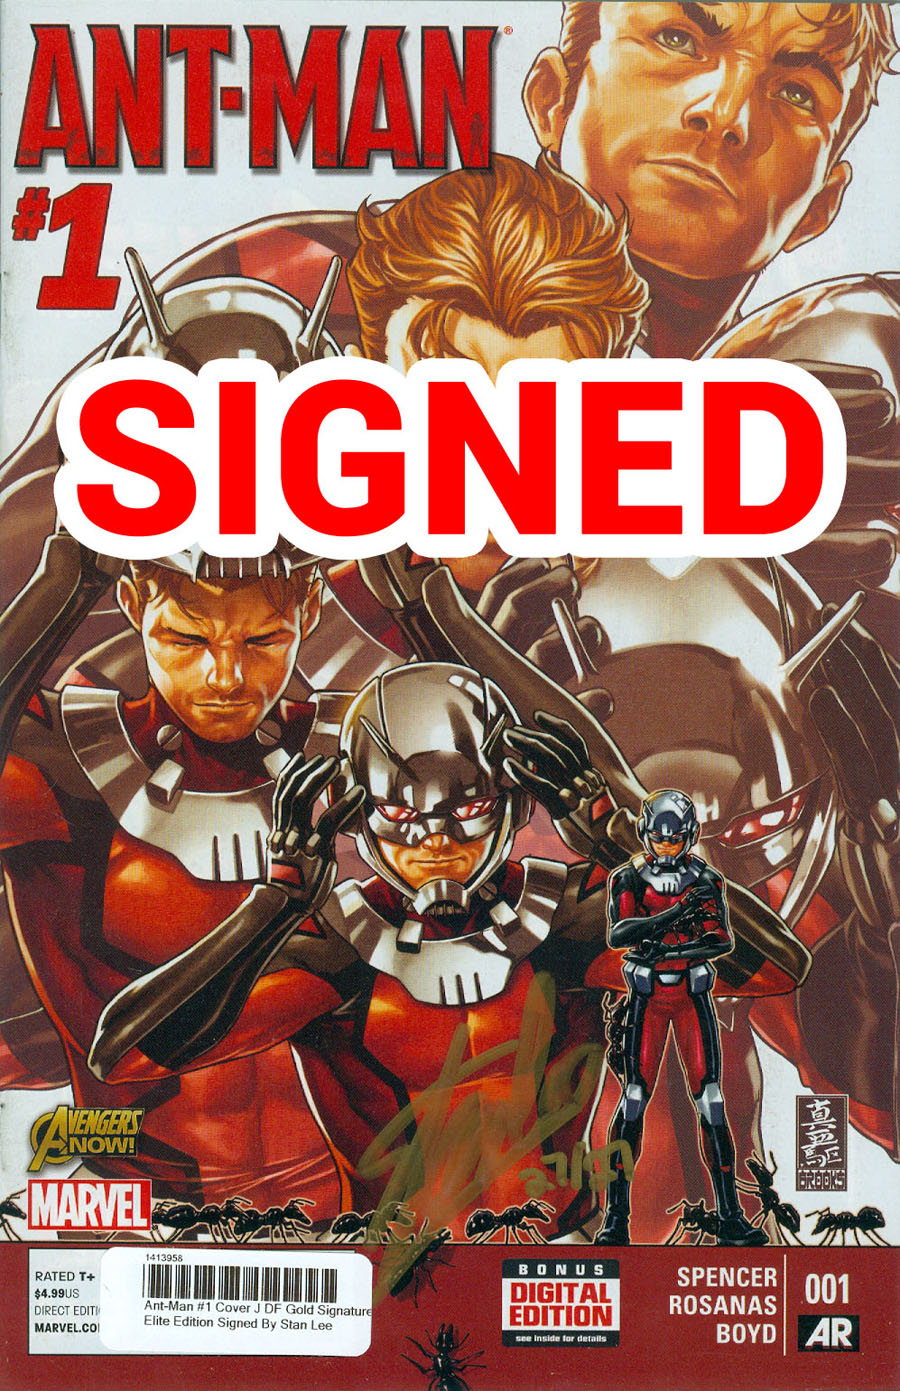 Ant-Man #1 Cover J DF Gold Signature Elite Edition Signed By Stan Lee